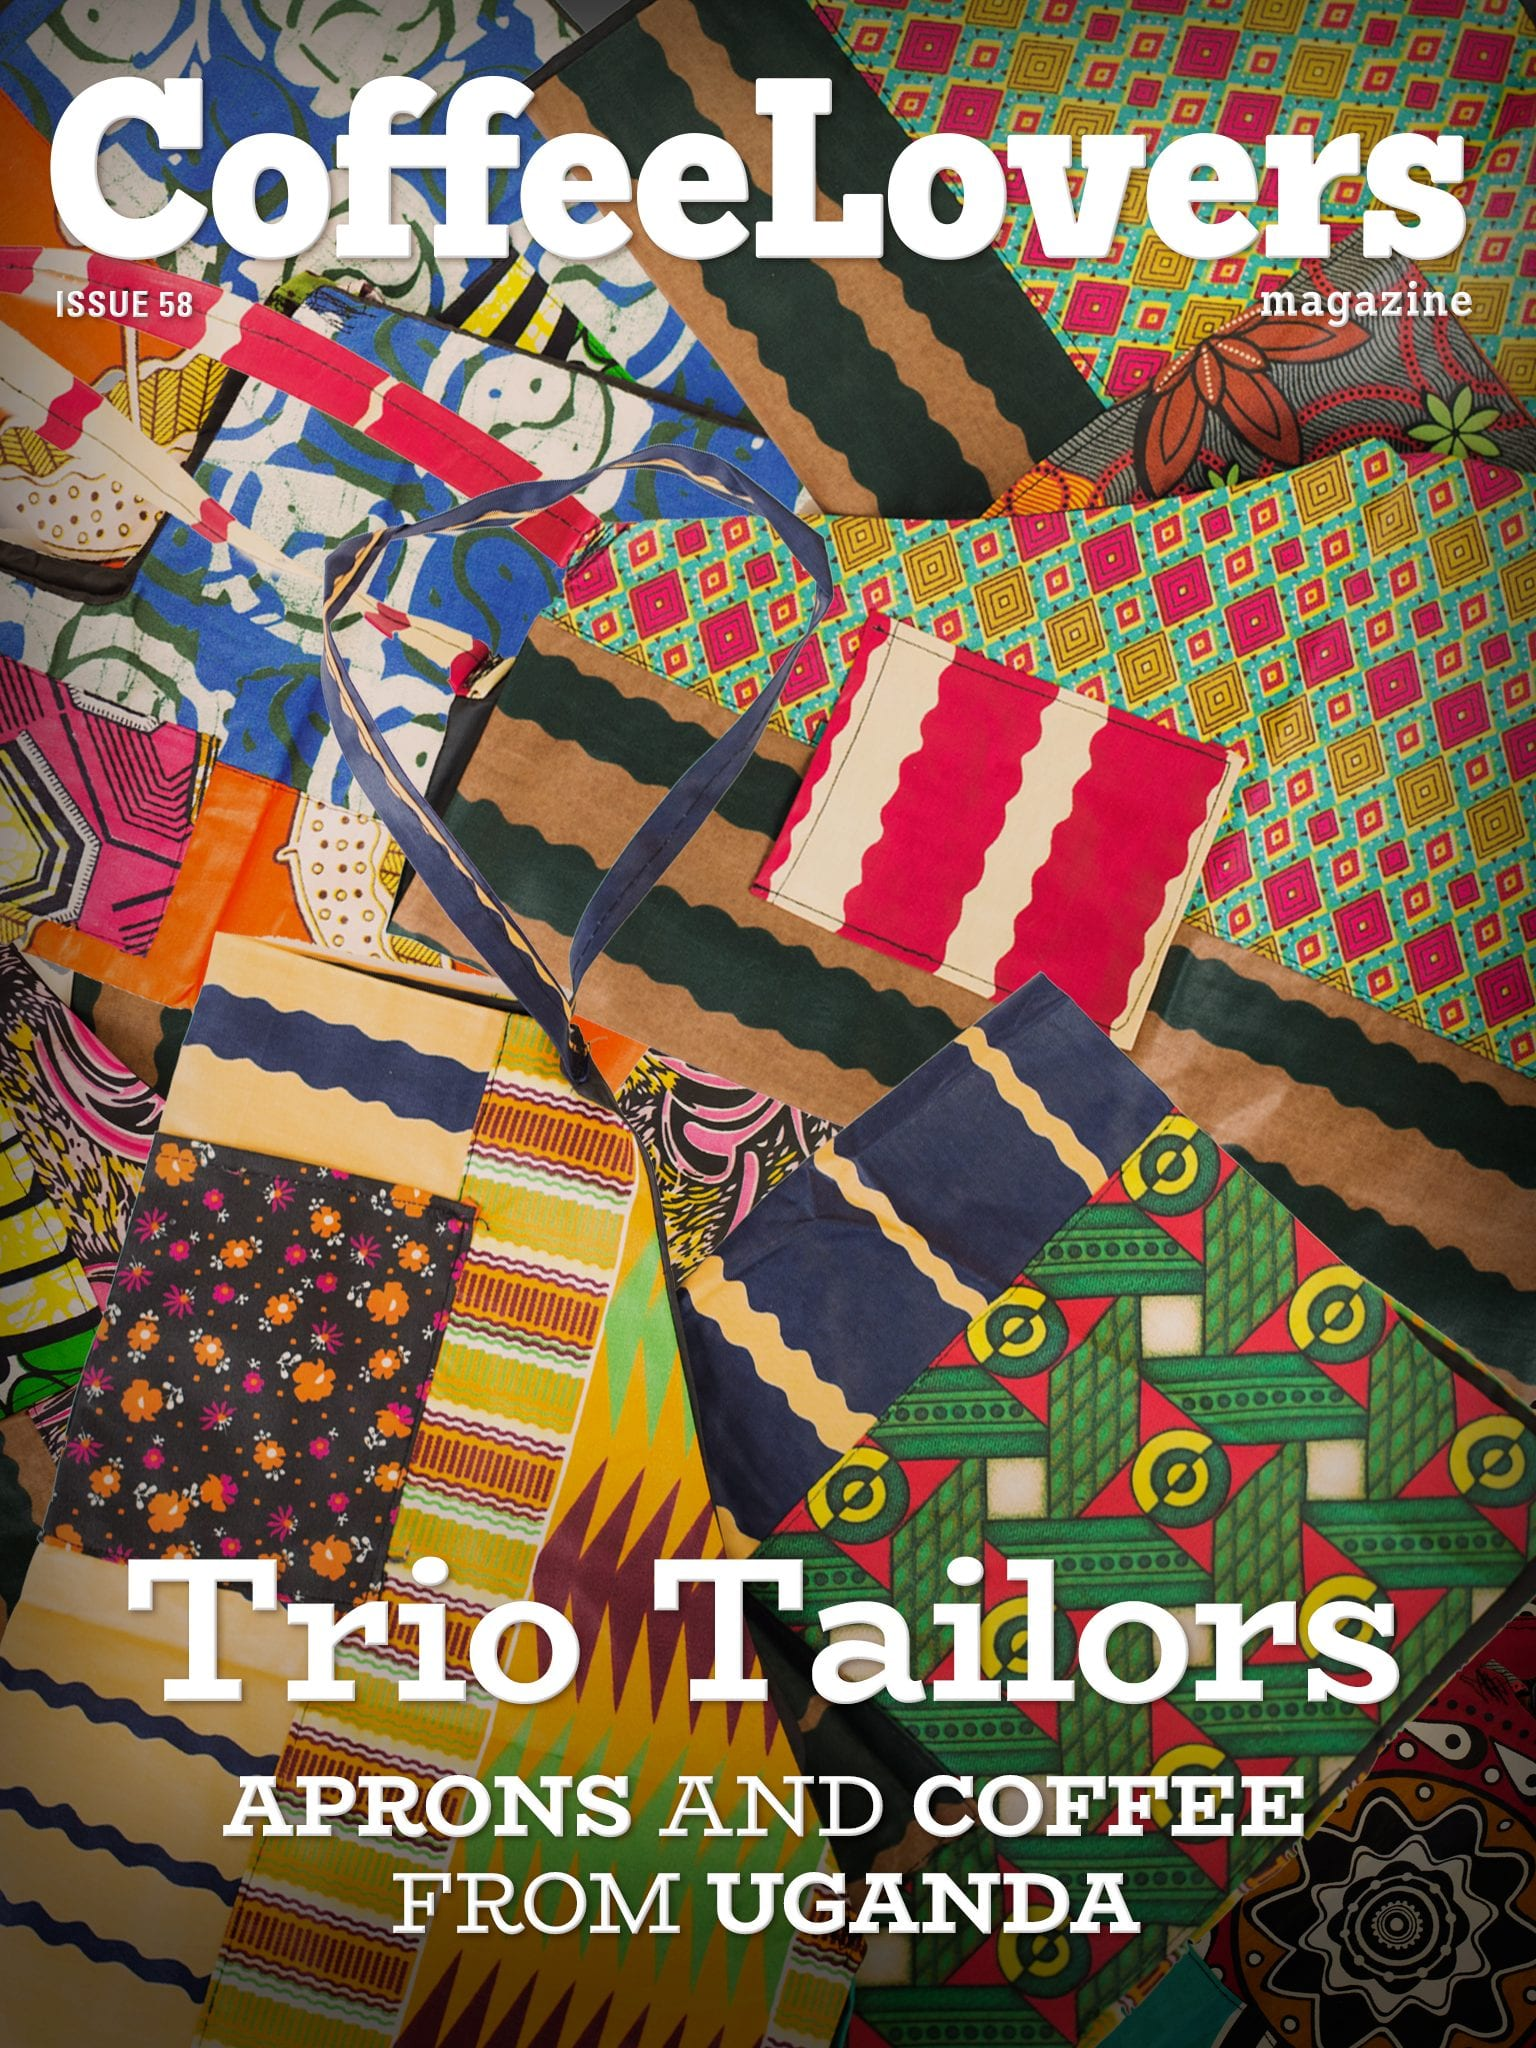 Trio Tailors: Coffee and Aprons from Uganda - Coffee Lovers Magazine Issue 58